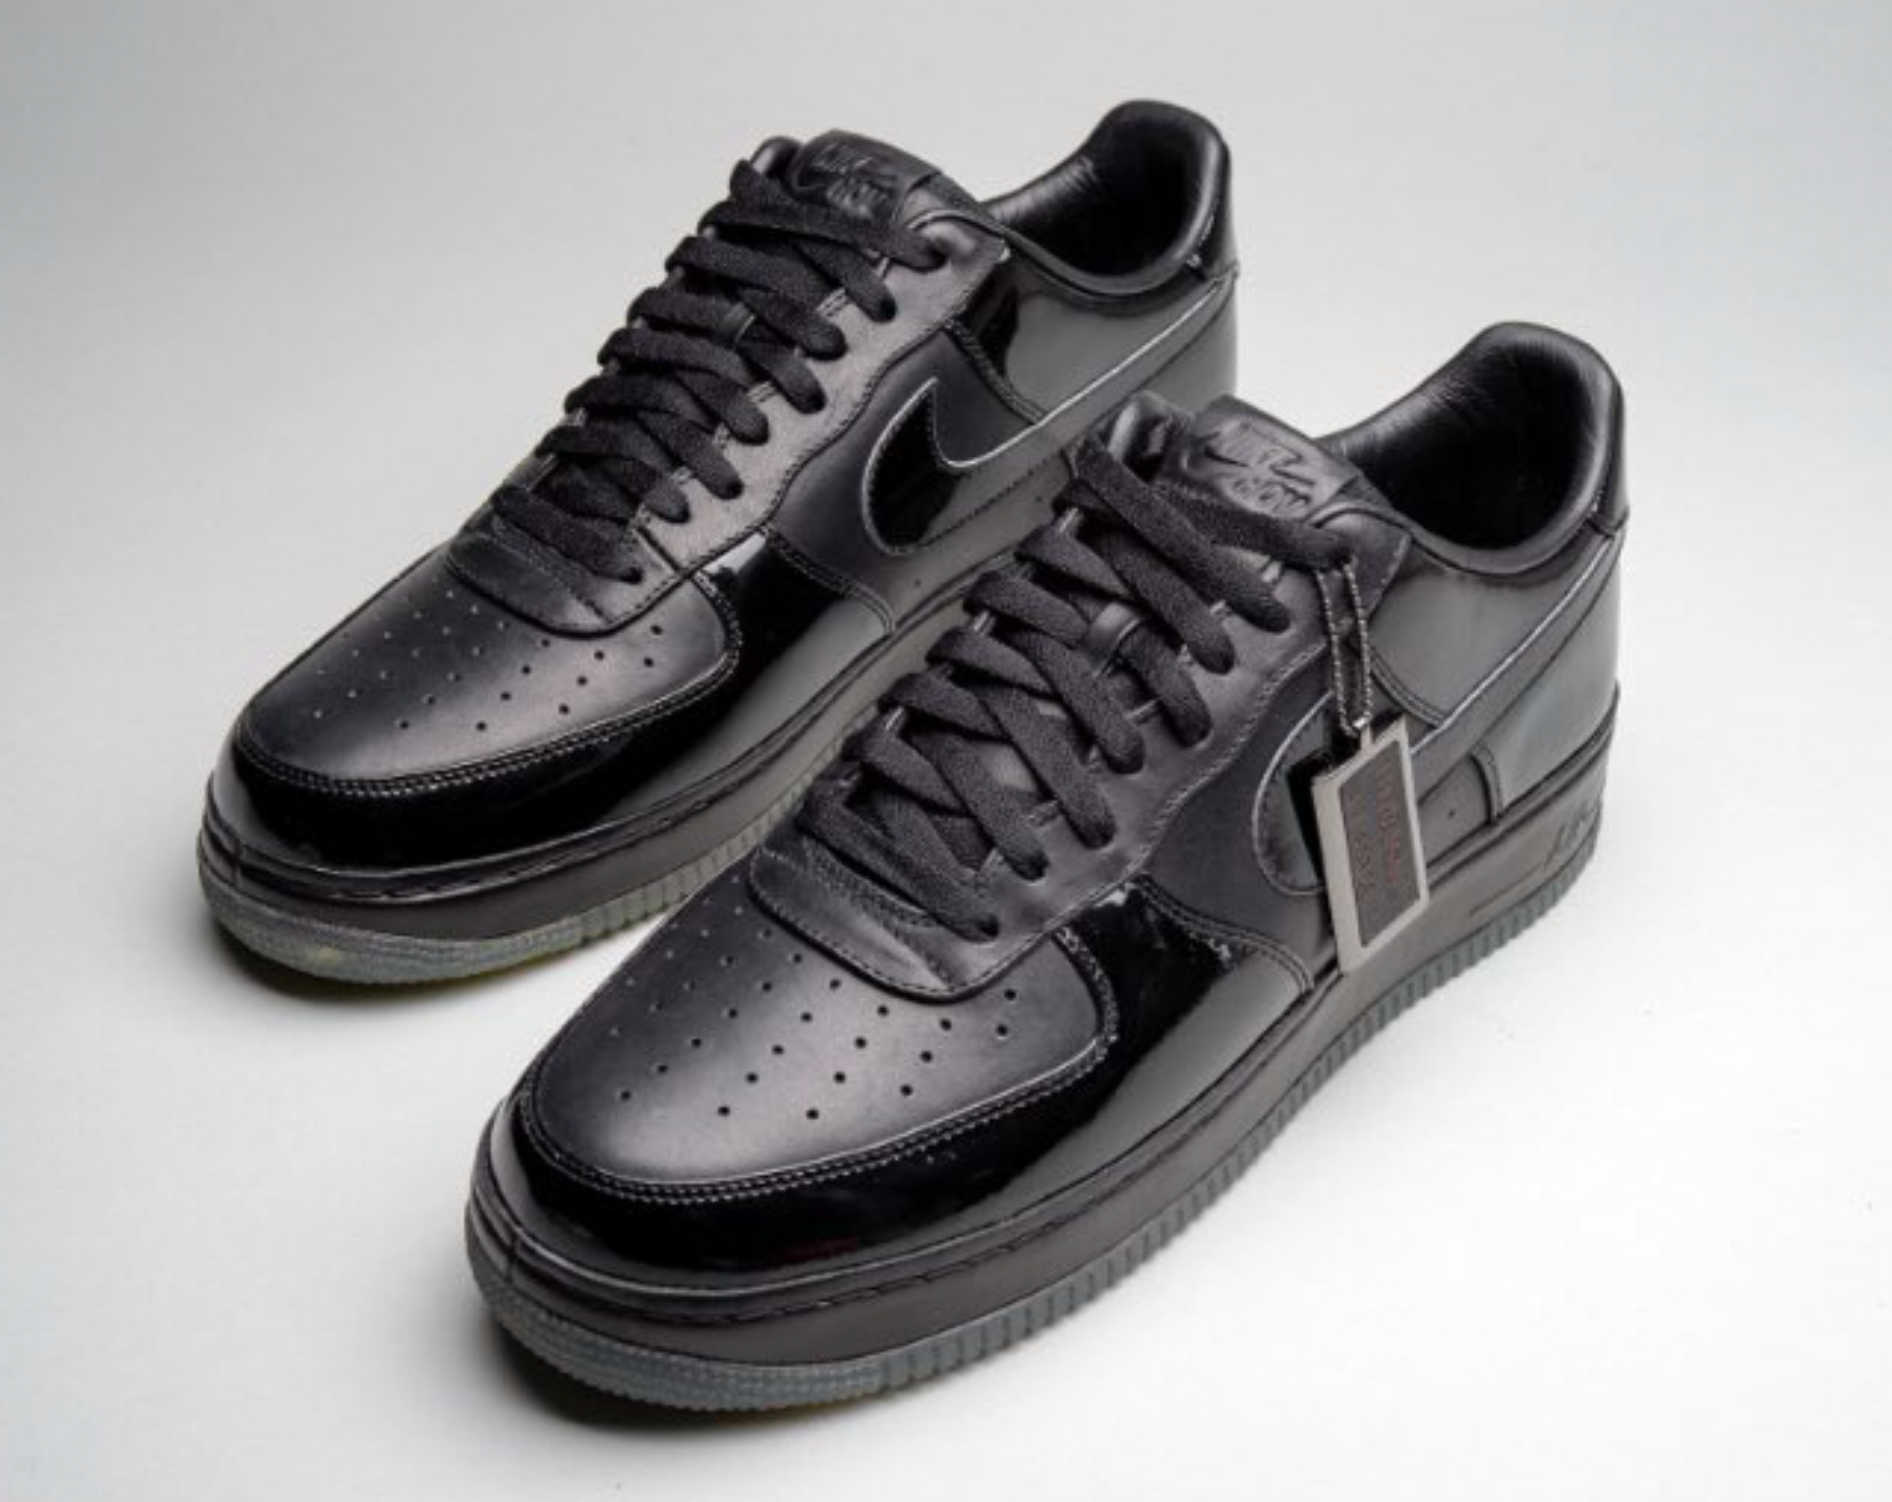 """2010 Air Force 1 HOV """"All Black Everything"""" (Jay Z Samples)"""